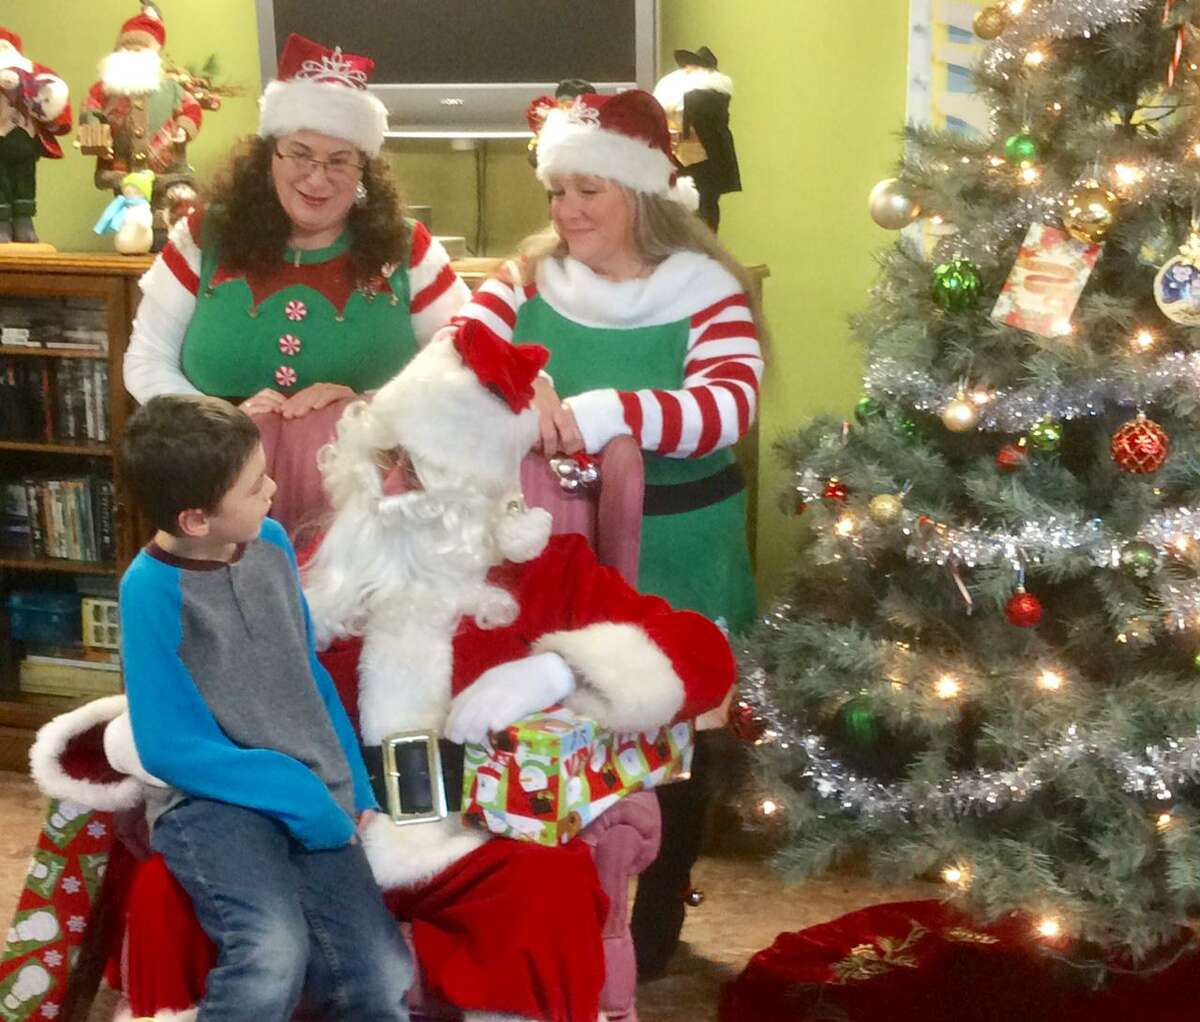 FISH held its Cookies & Cocoa party for the shelter's children on Dec. 20. Above, staff members dressed as elves join Santa to hear a little boy's Christmas wishes.